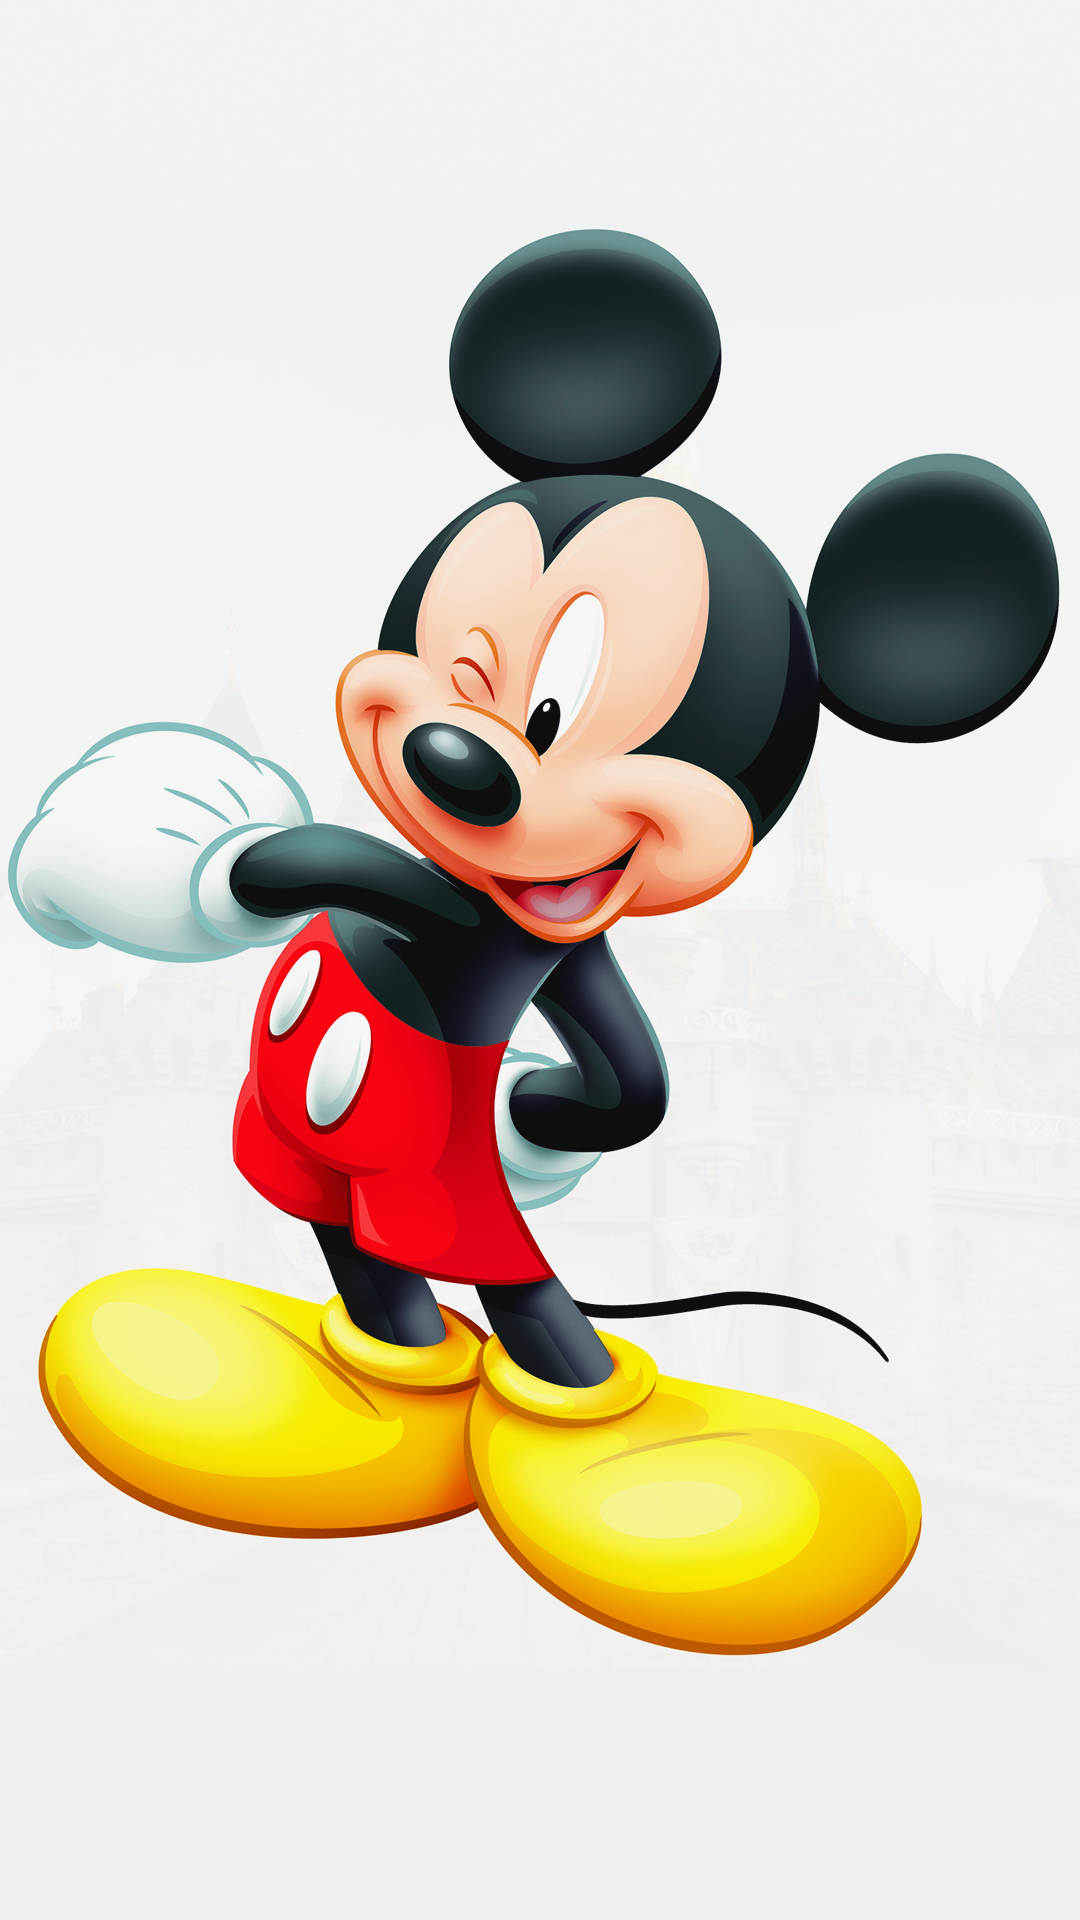 Ultra Hd Mickey Mouse Wallpaper For Your Mobile Phone 0459